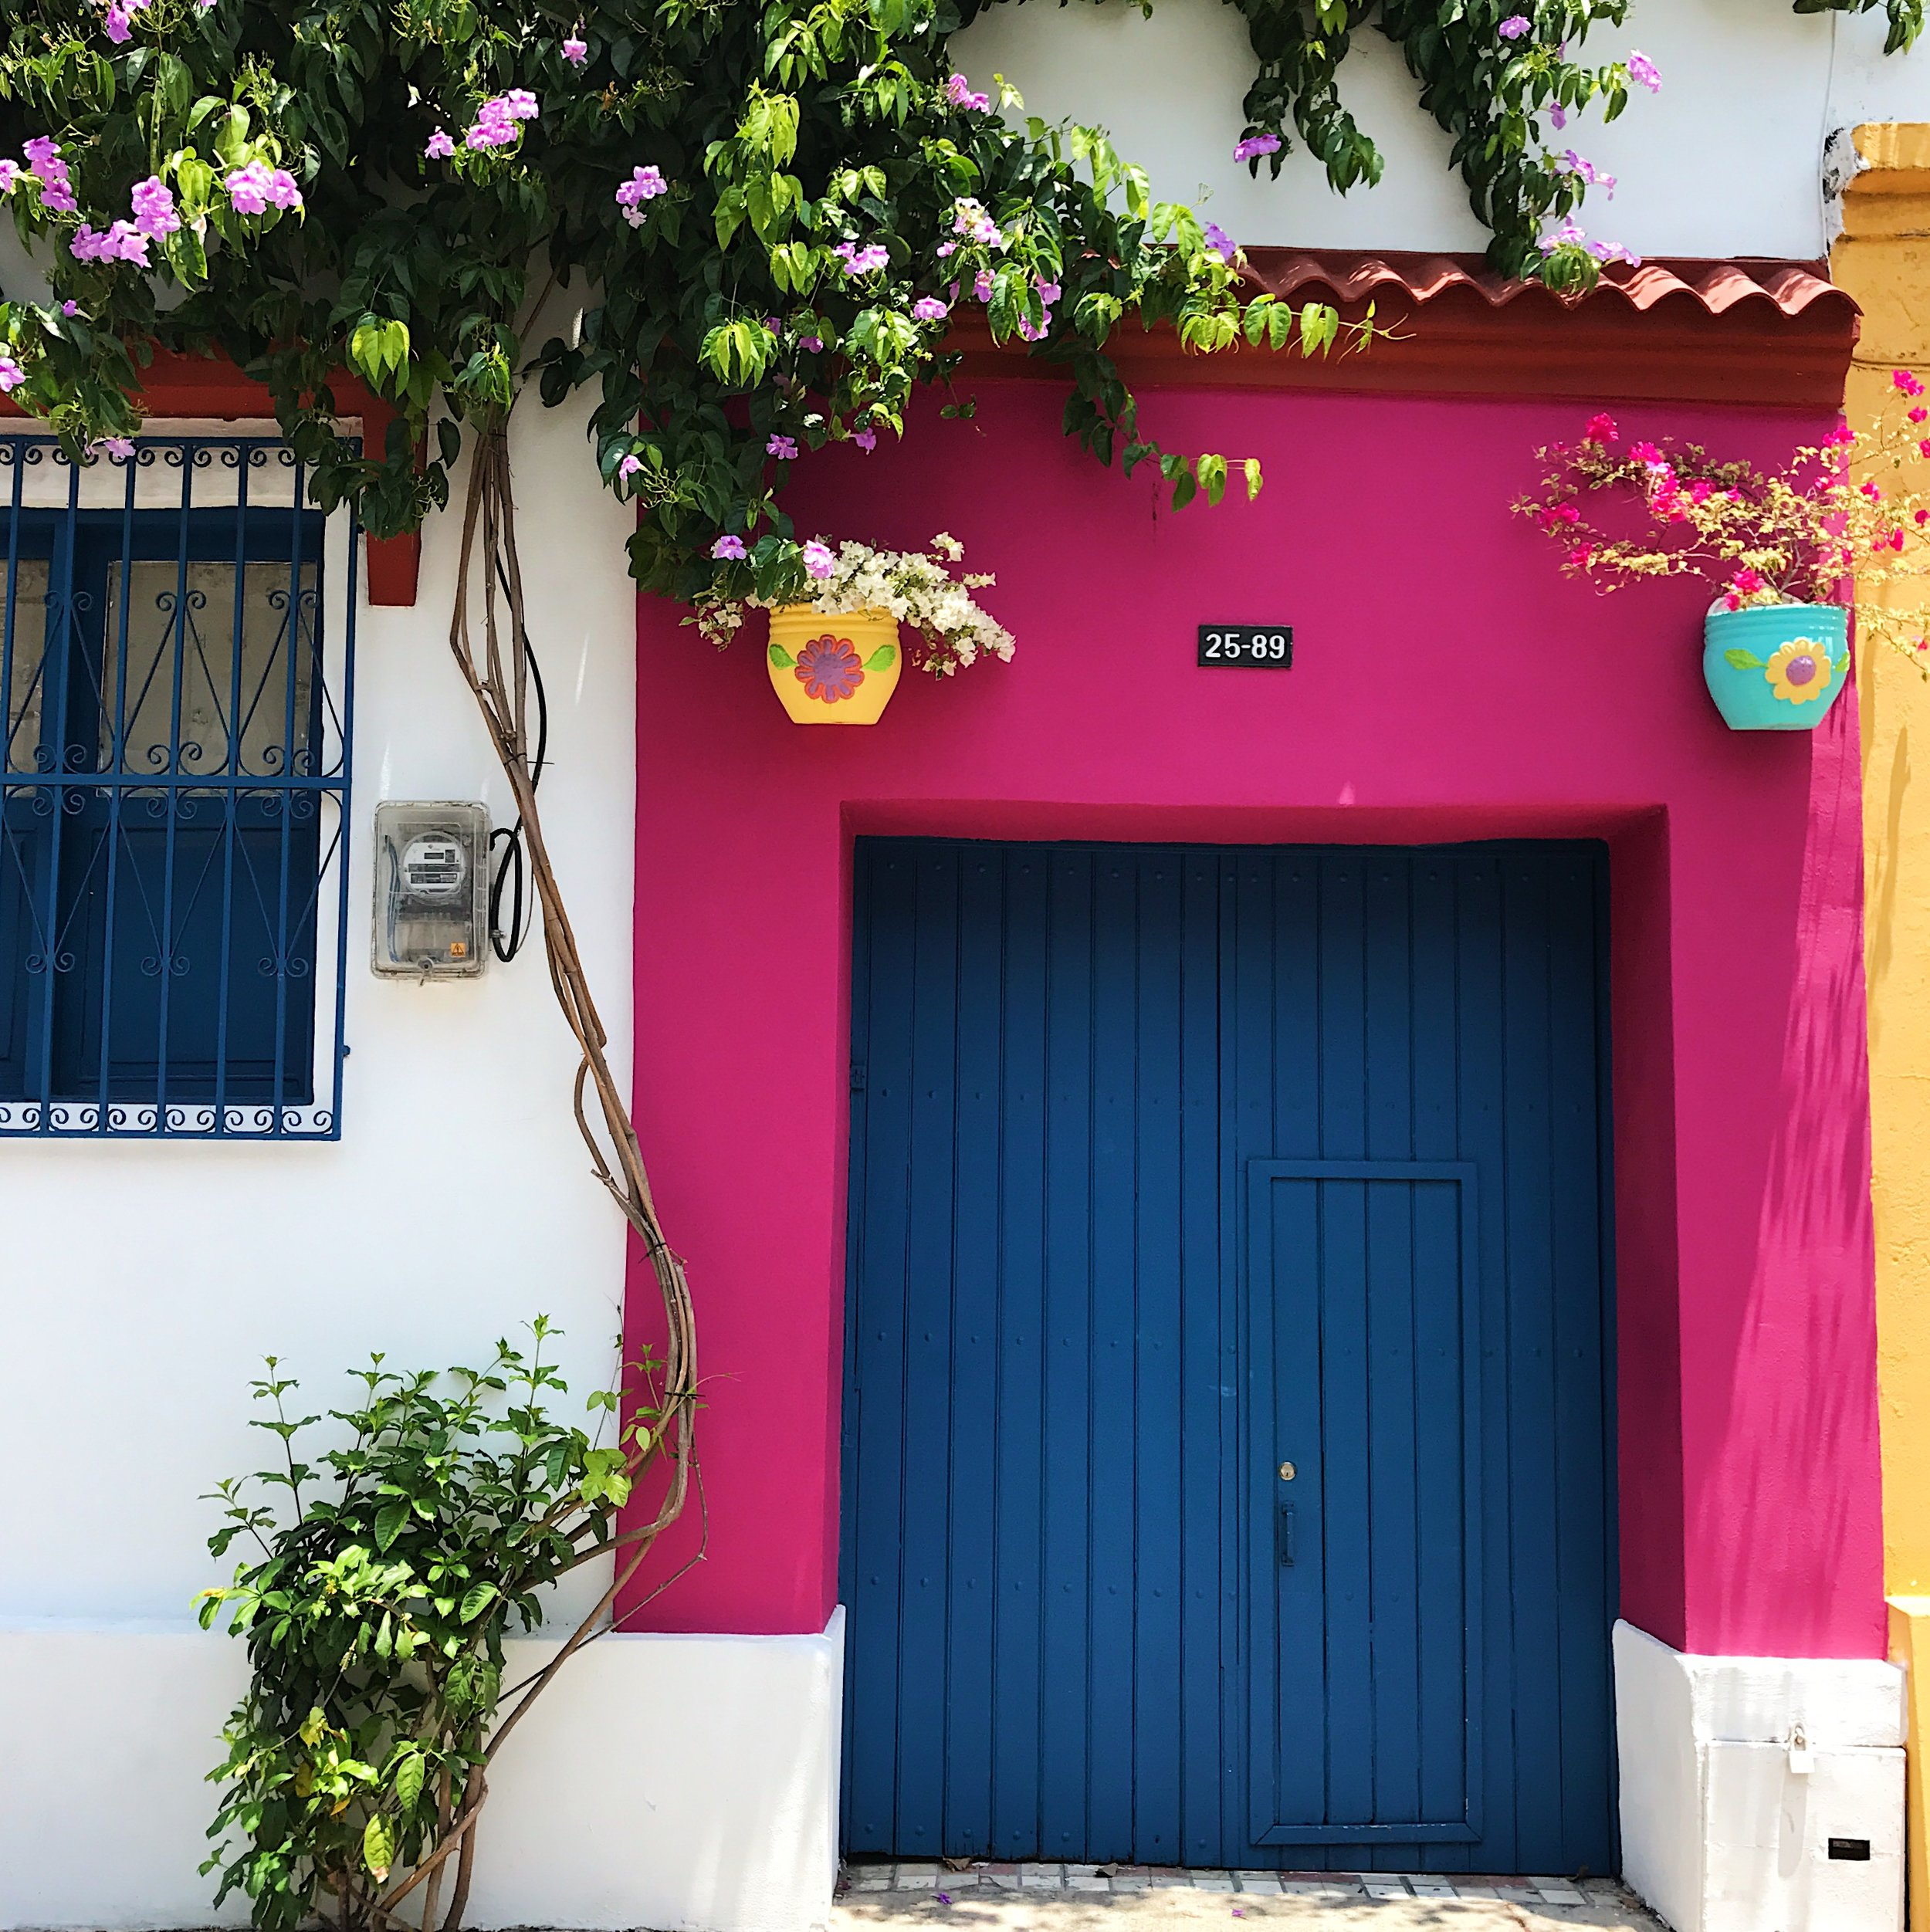 Yes, every corner of Cartagena is this colorful.